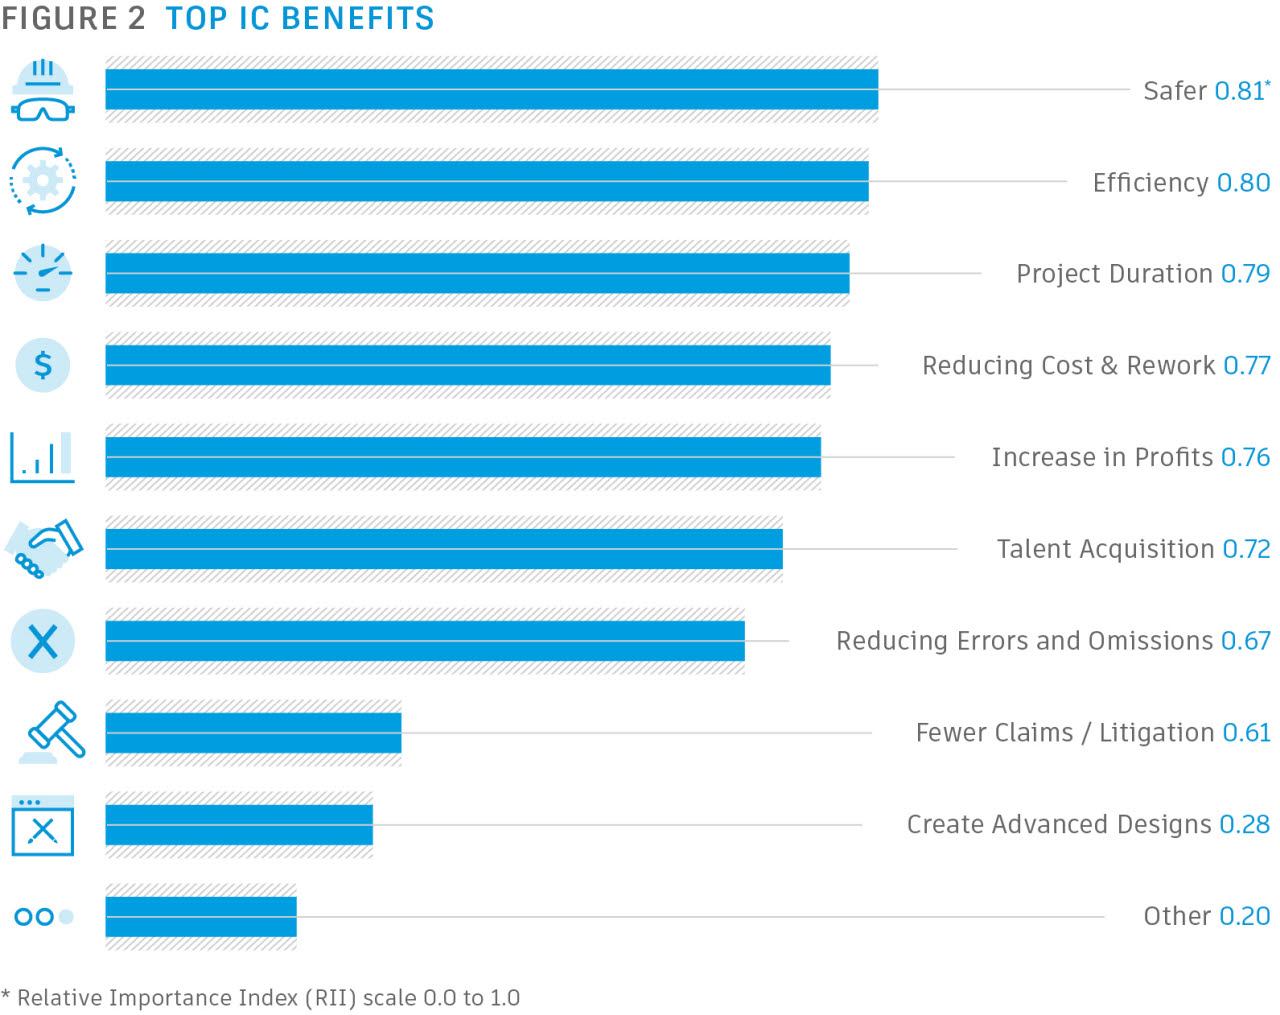 Autodesk - Top IC benefits